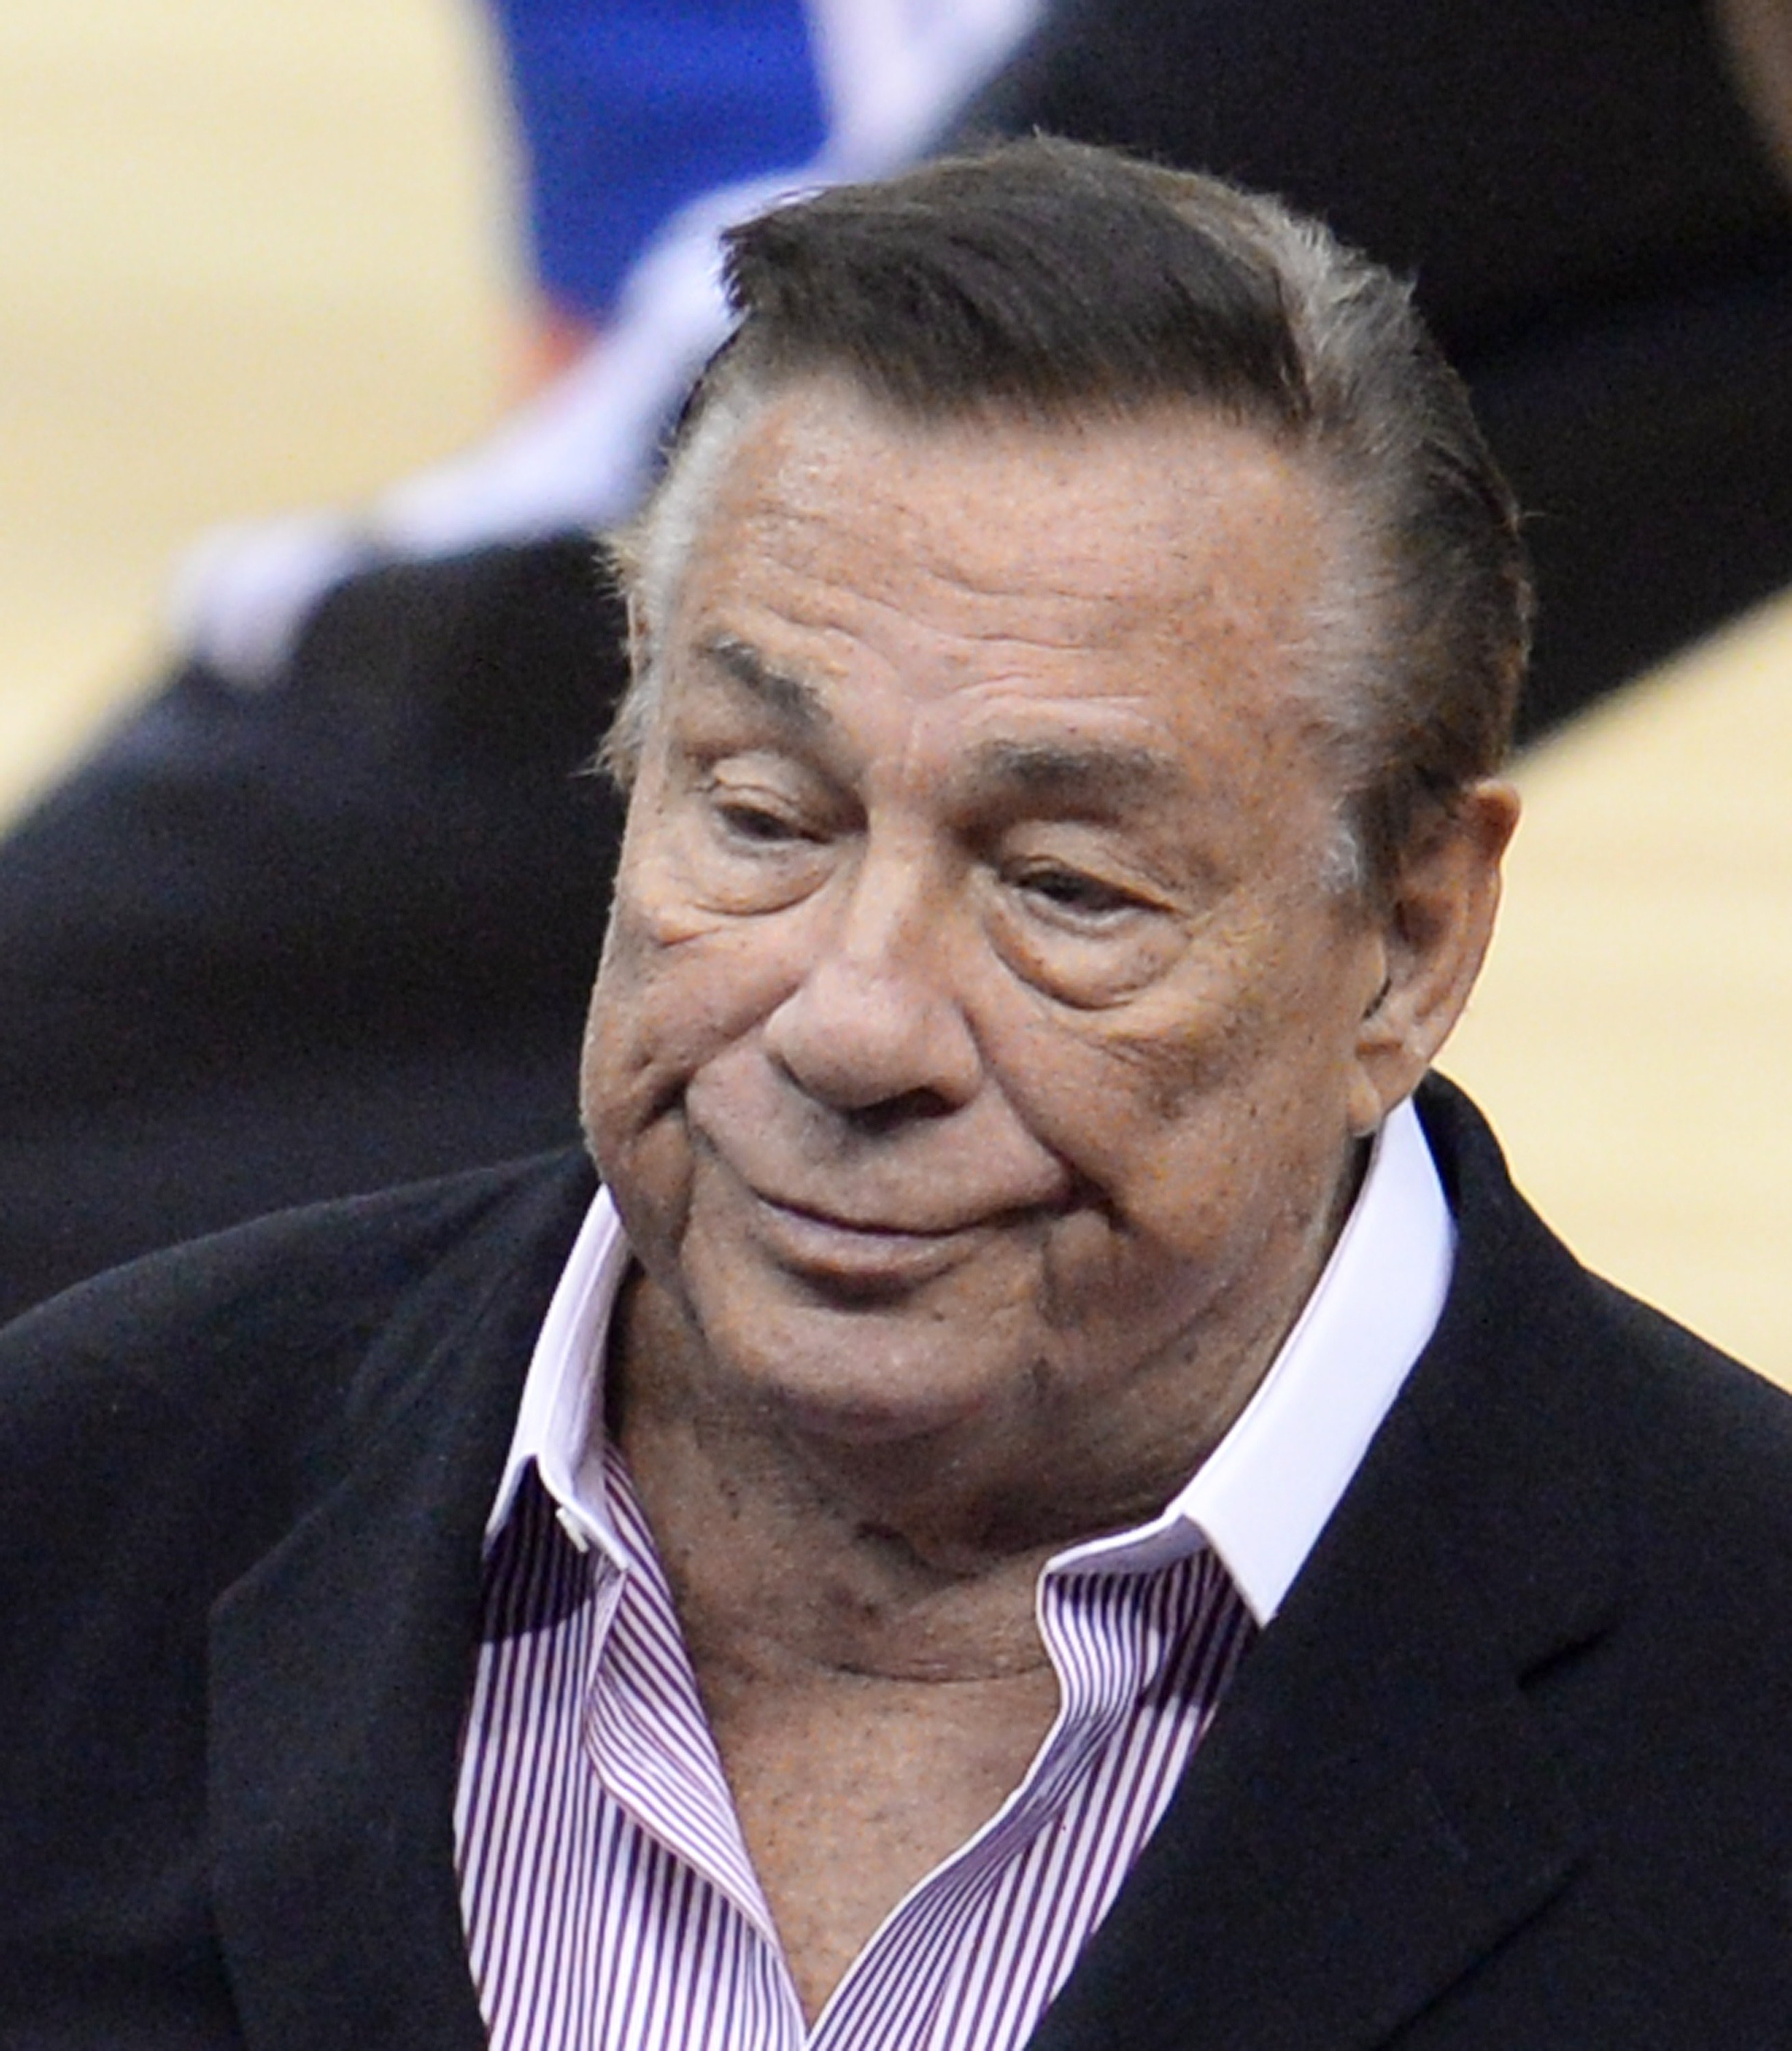 Los Angeles Clippers owner Donald Sterling attends the NBA playoff game between the Clippers and the Golden State Warriors on April 21, 2014 at Staples Center in Los Angeles, California. The NBA banned Sterling for life for  deeply offensive and harmful  racist comments that sparked a national firestorm. NBA Commissioner Adam Silver hit Sterling with every penalty at his disposal, fining him a maximum $2.5 million dollars and calling on other owners to force him to sell his team.   AFP PHOTO / ROBYN BECK        (Photo credit should read ROBYN BECK/AFP/Getty Images)